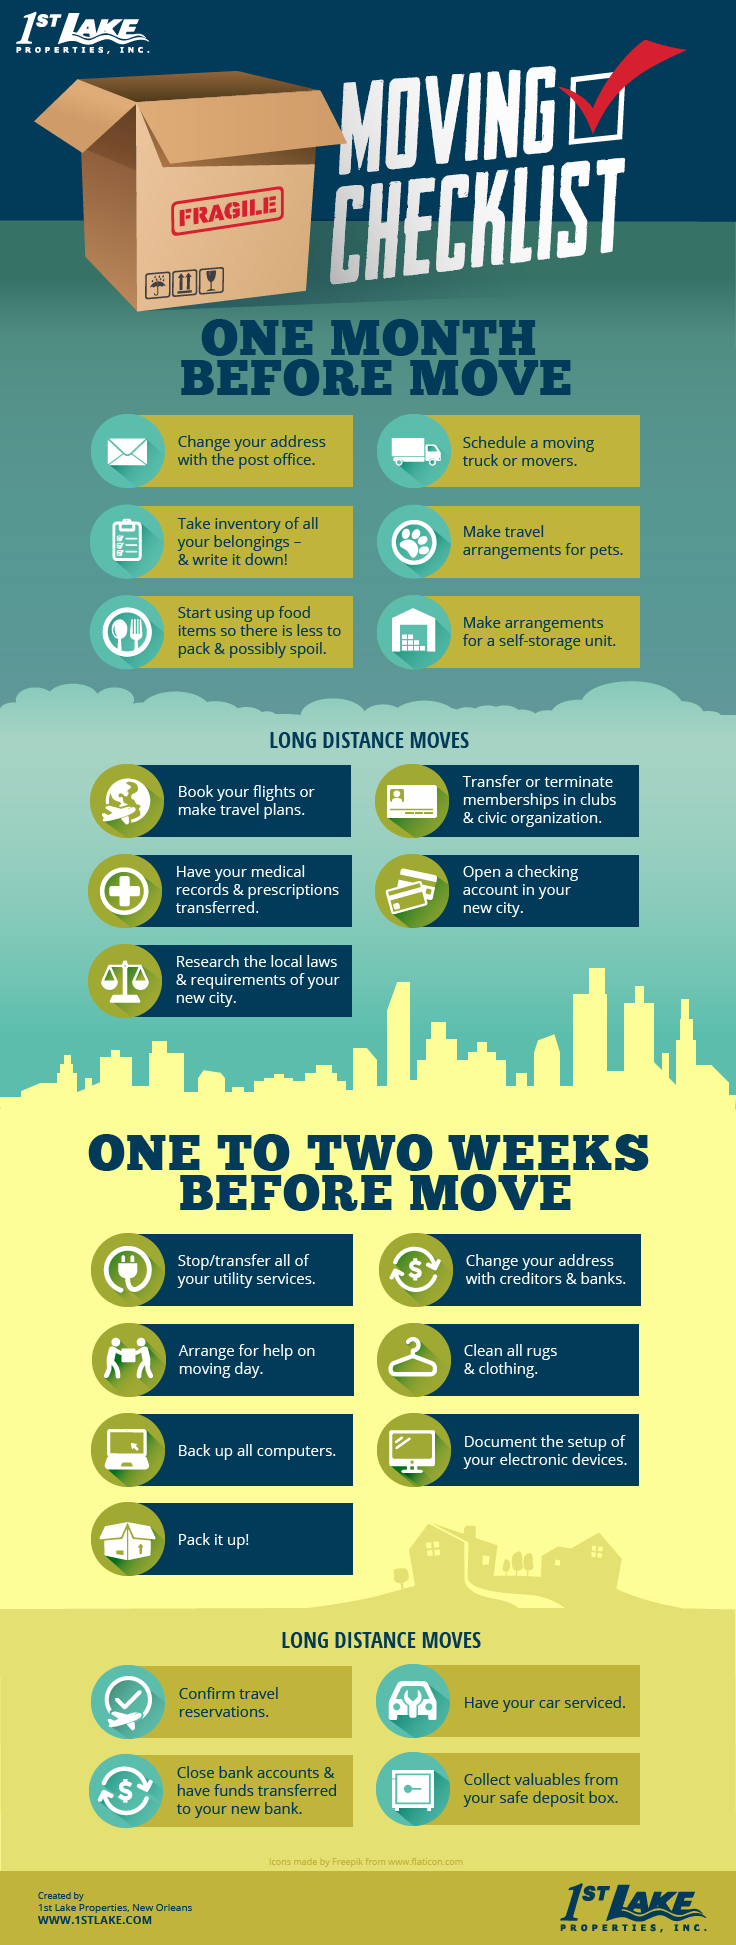 Moving Tips Checklist Infographic